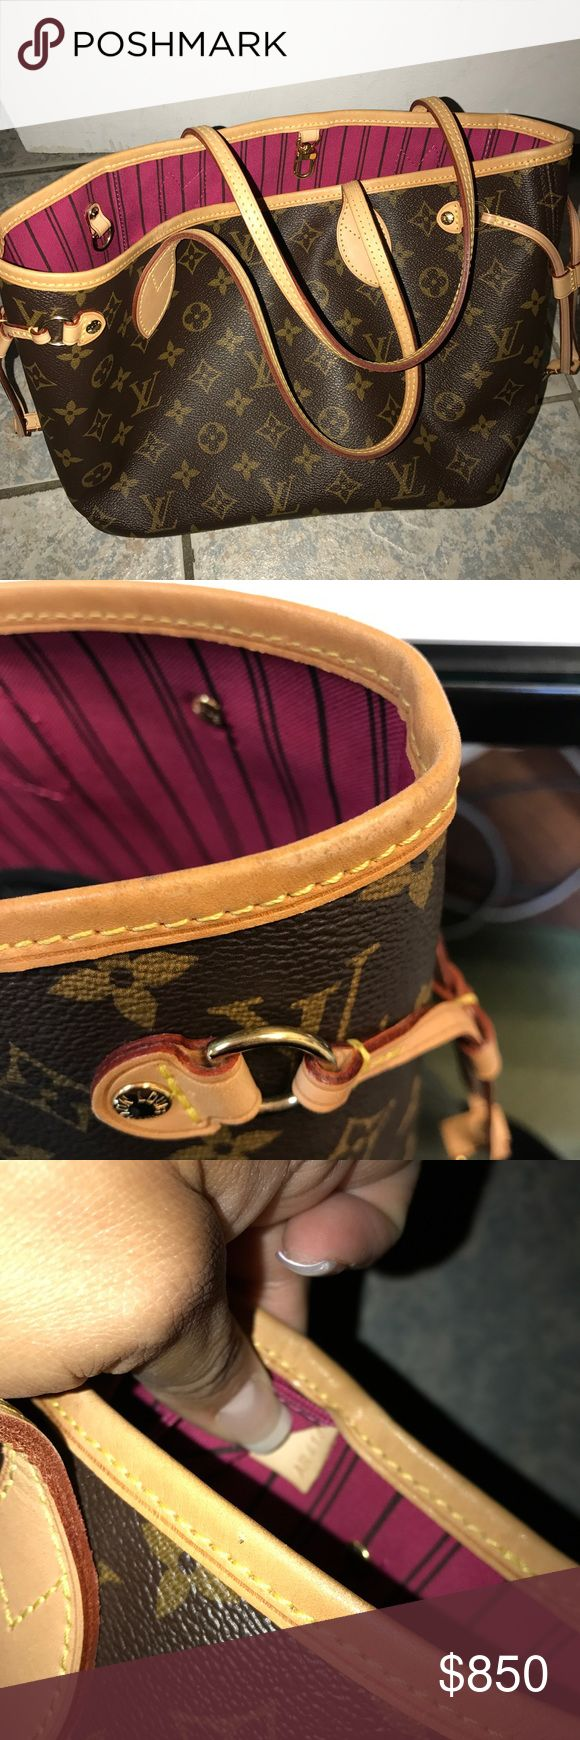 Louis Vuitton Neverfull Pm Good condition, has few stains inside and trim around bag shows light wear. No dustbag or box Louis Vuitton Bags Totes